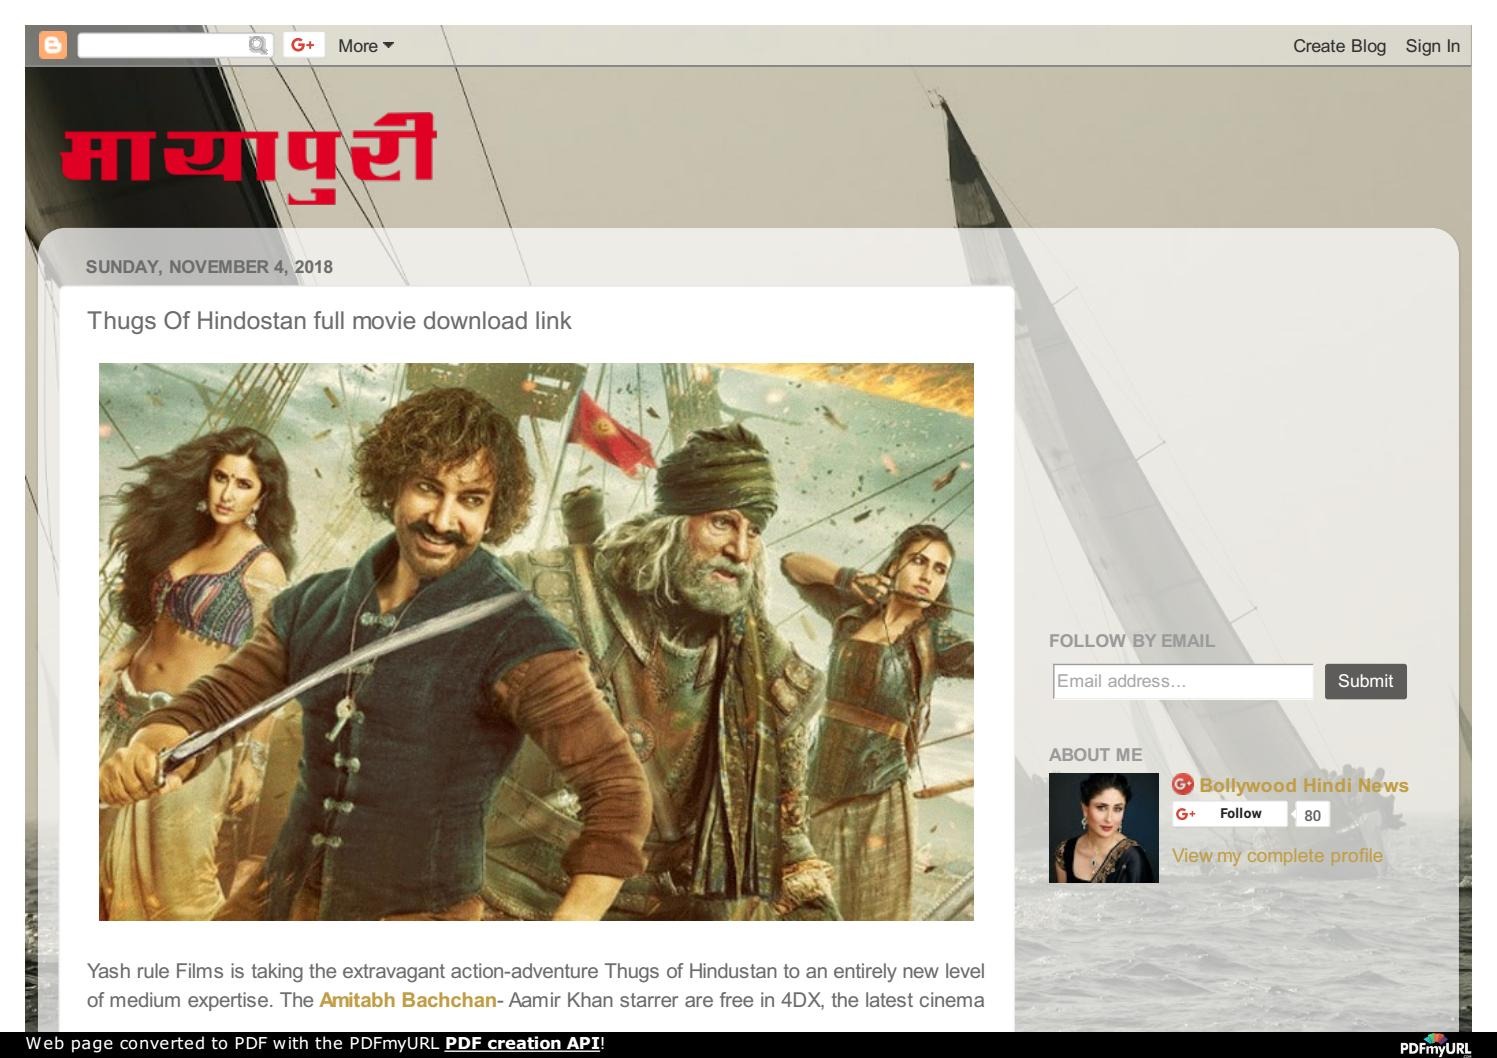 Thugs Of Hindostan full movie download link